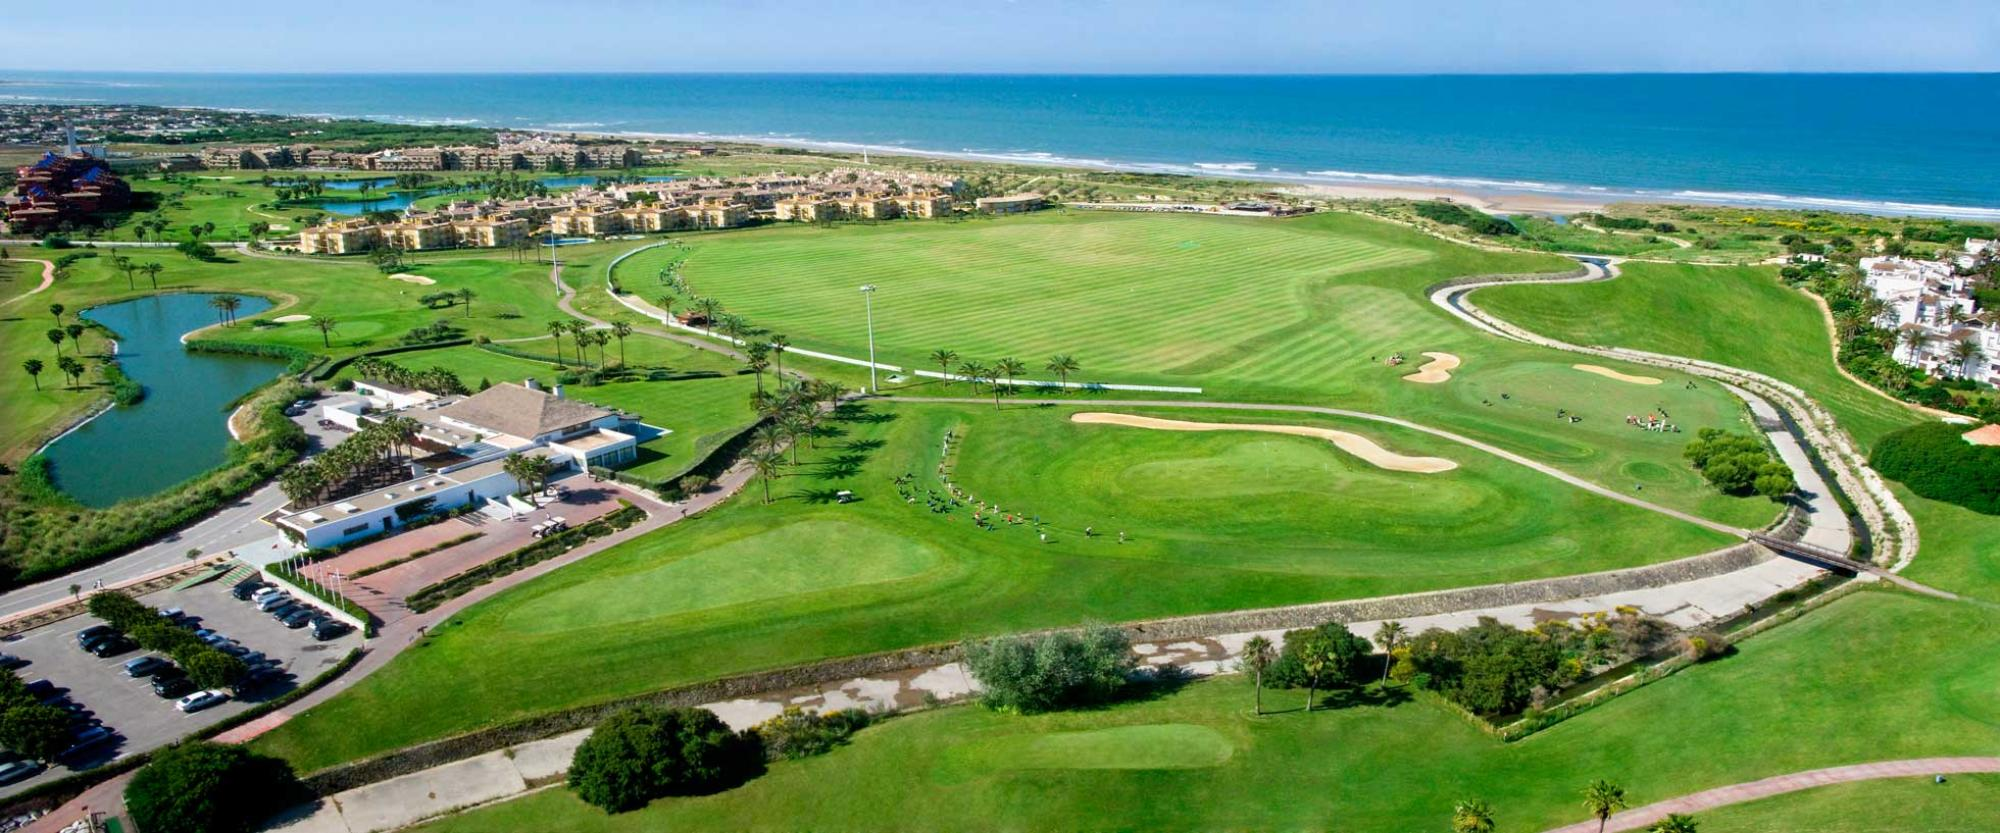 The Costa Ballena Ocean Golf Club's scenic golf course within magnificent Costa de la Luz.